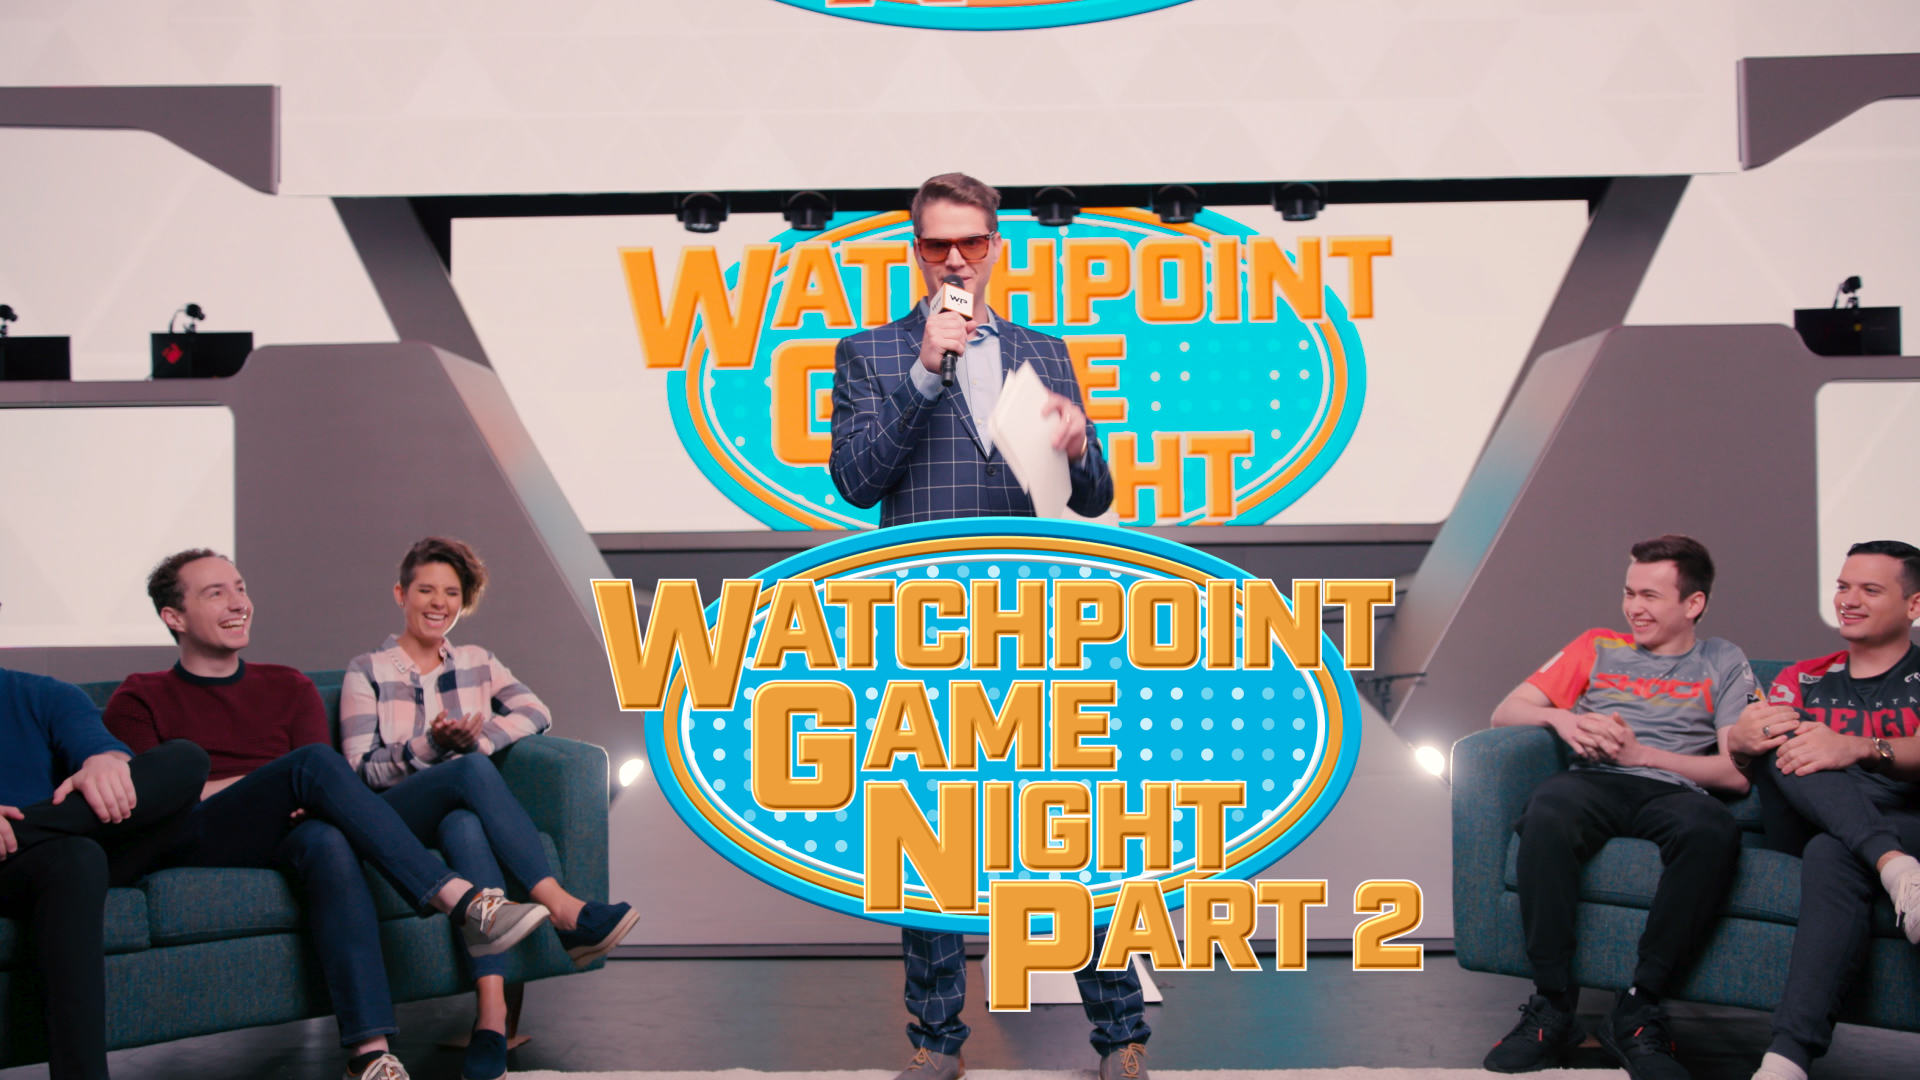 Watchpoint Game Night Part 2